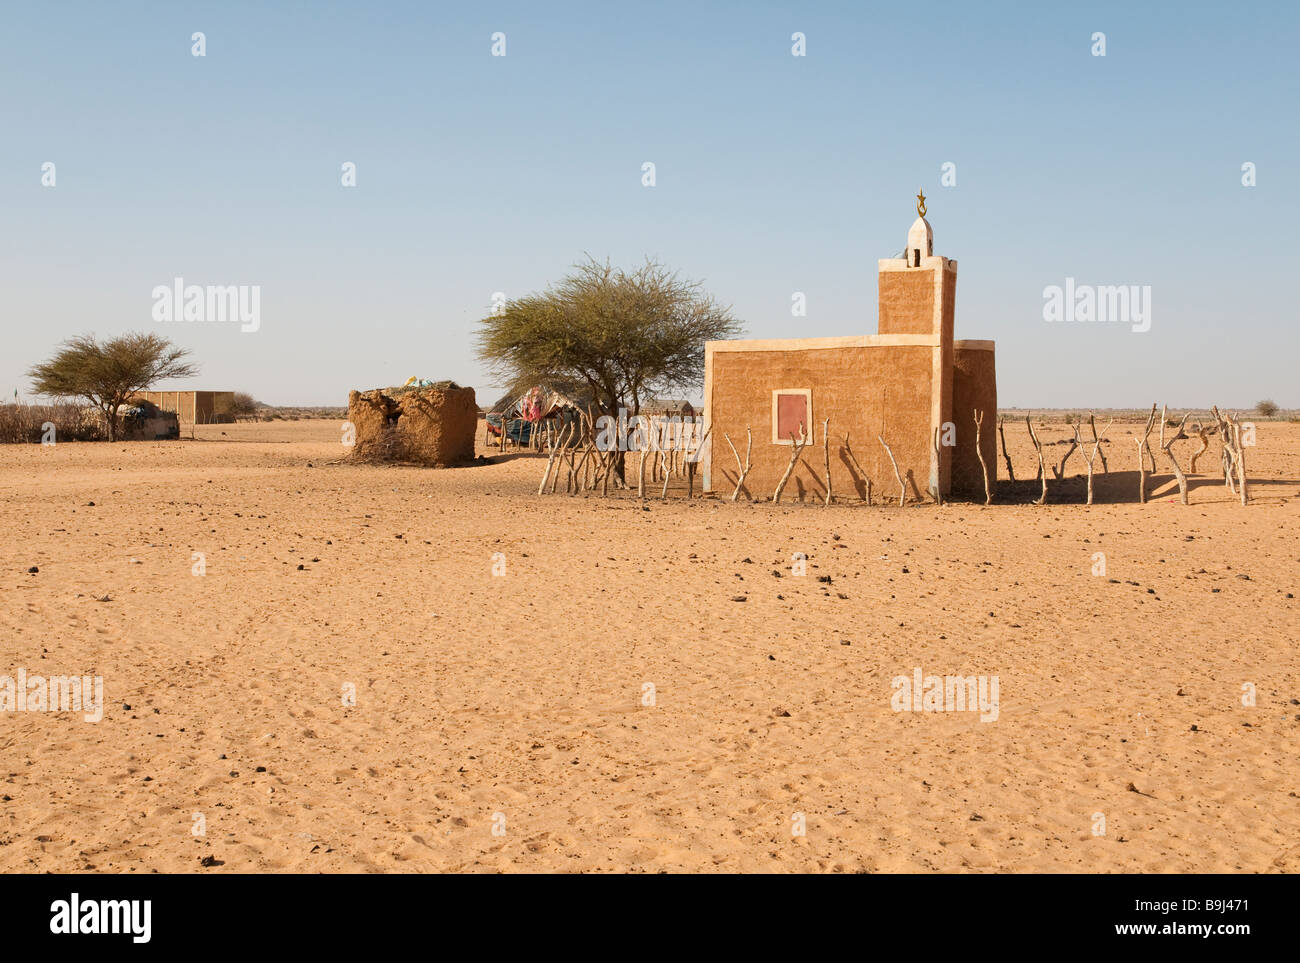 West Africa Mauritania Road of Hope small mosque in remote town - Stock Image